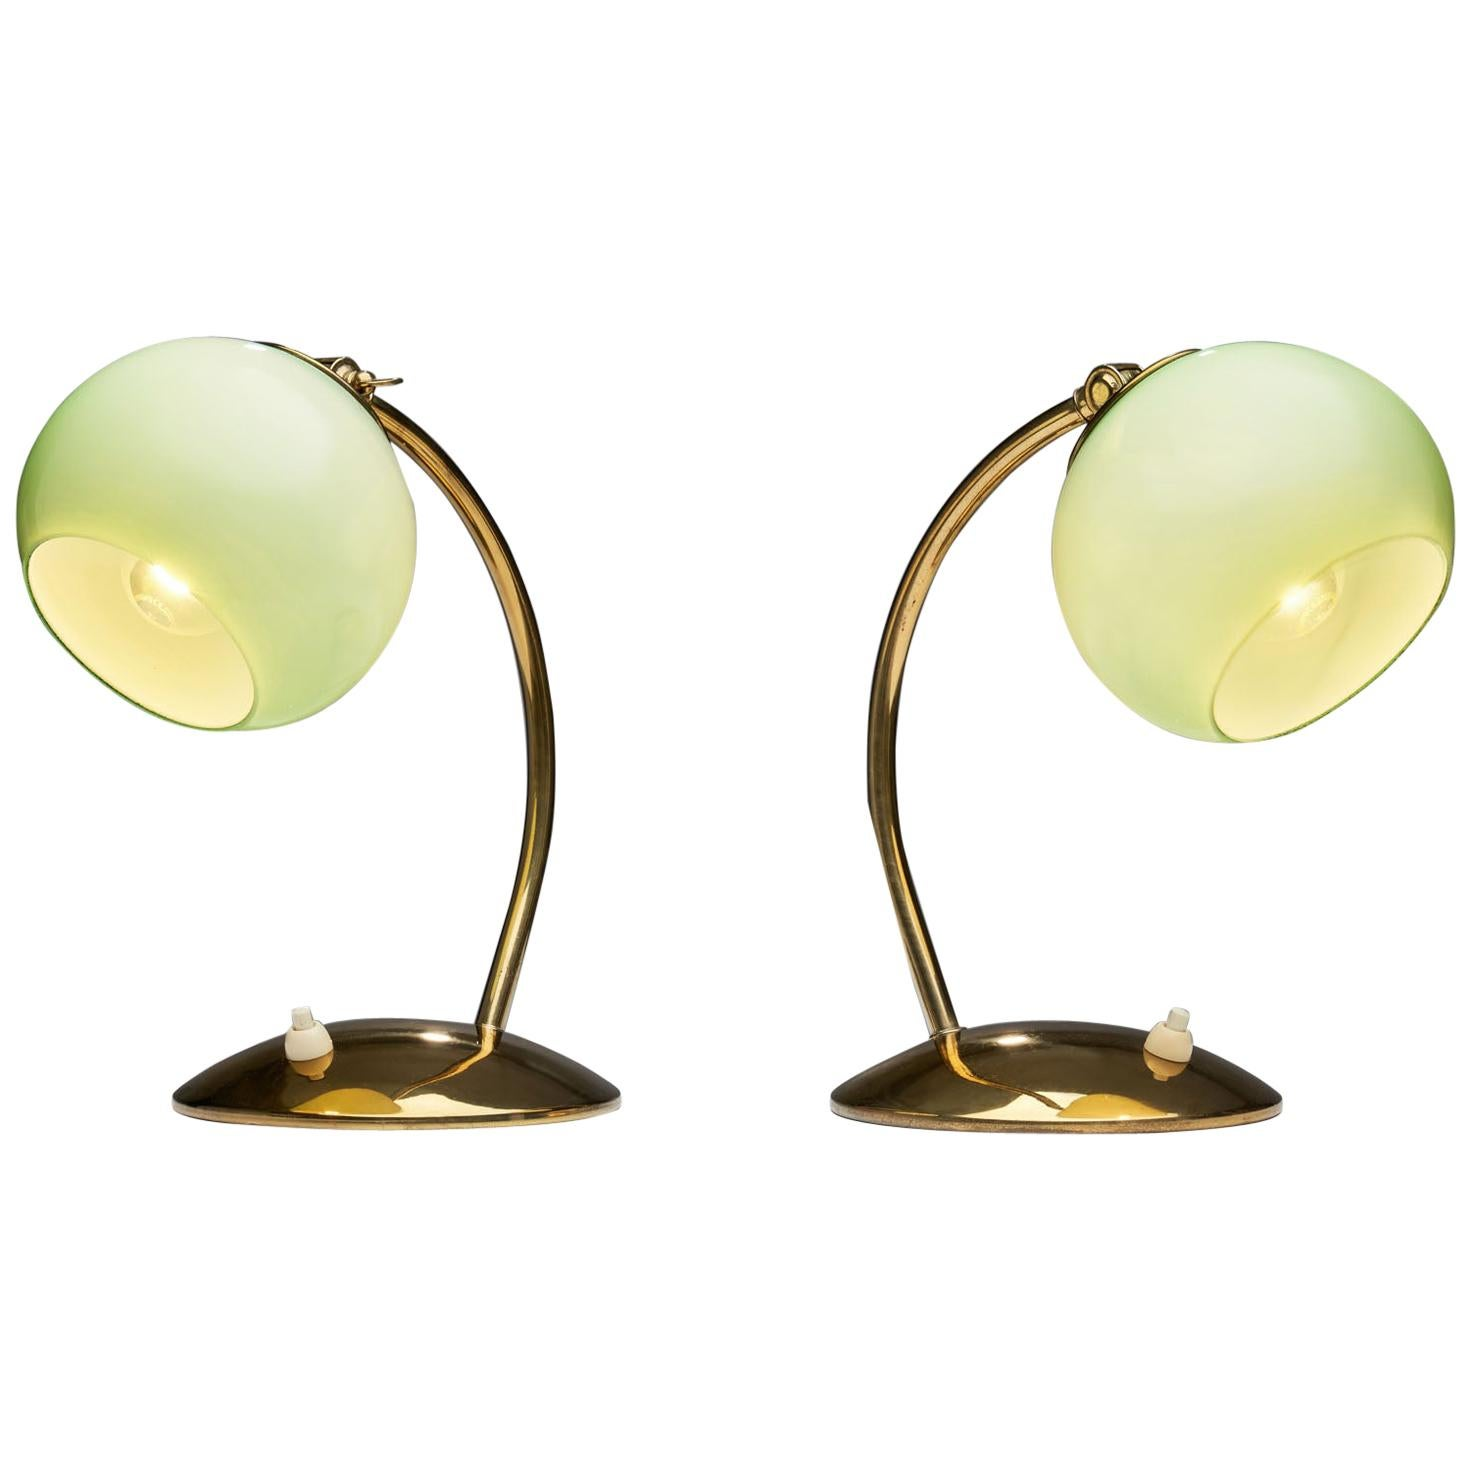 Aneta Tinted Glass and Brass Table Lamps, Sweden, 1950s